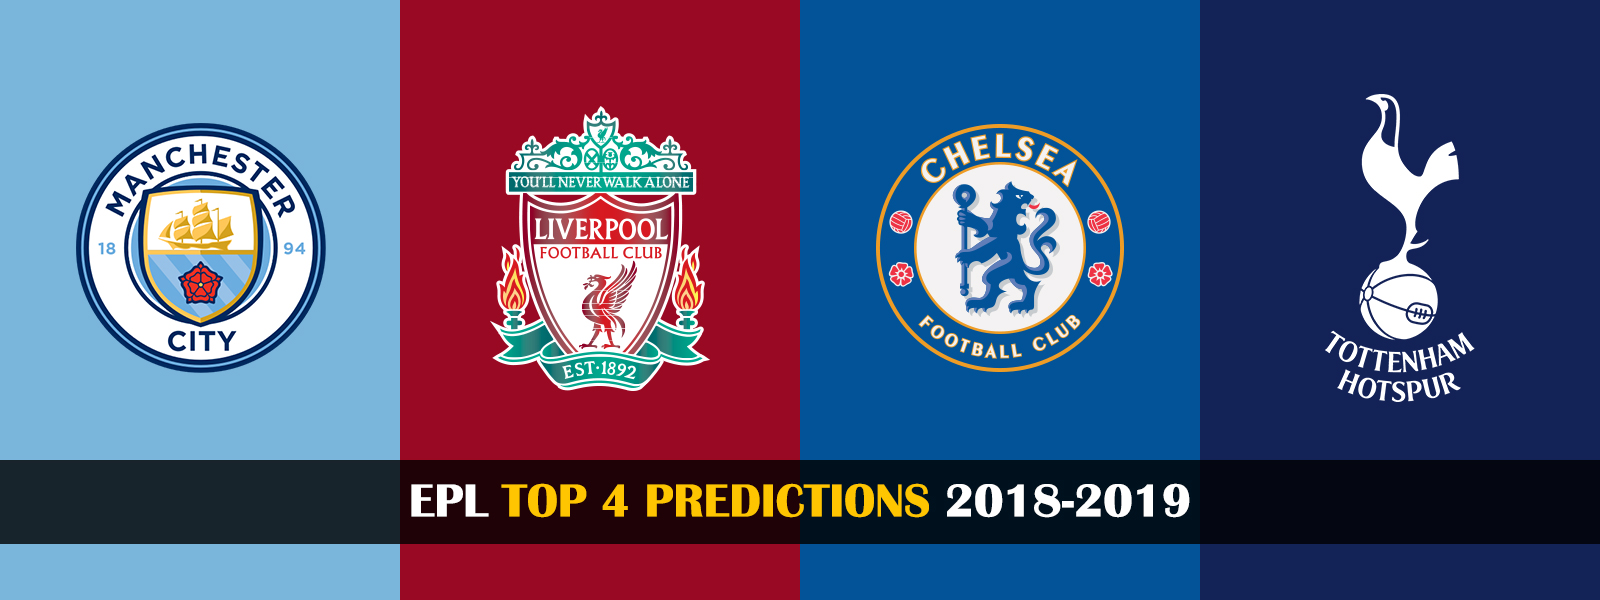 Premier League 2018-2019 Top 4 Clubs Prediction